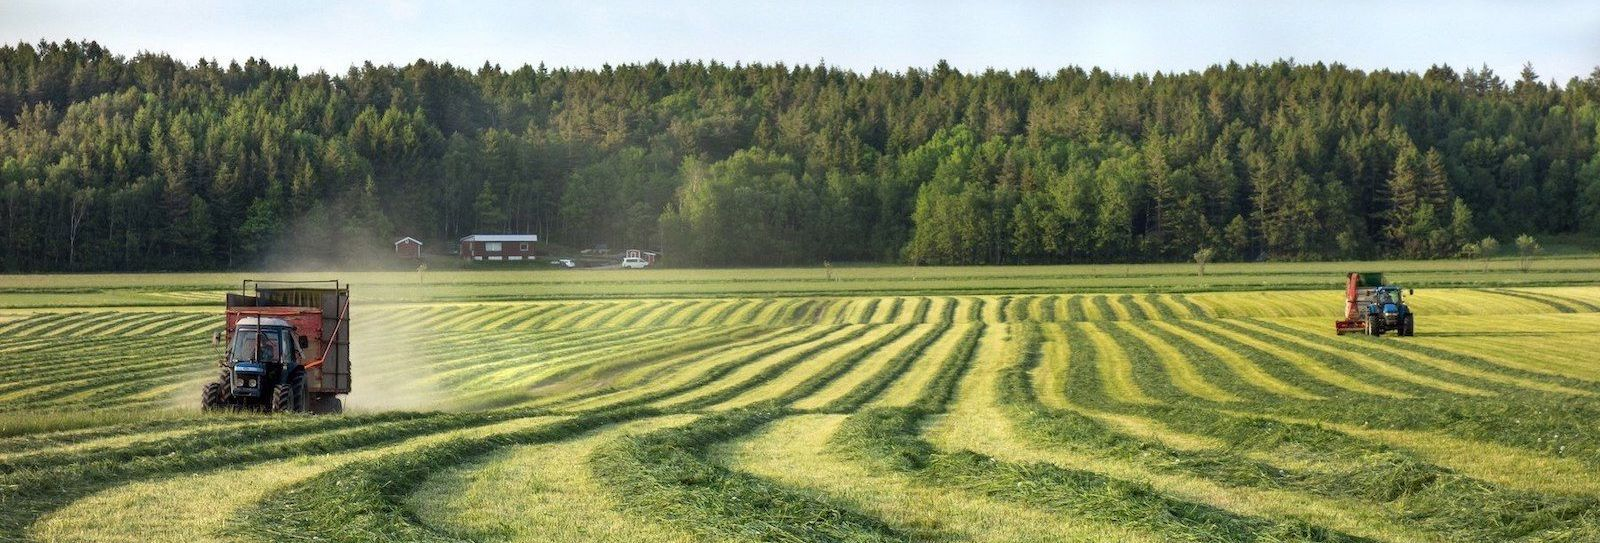 High Demand for Grains Makes Farmland a Promising Investment